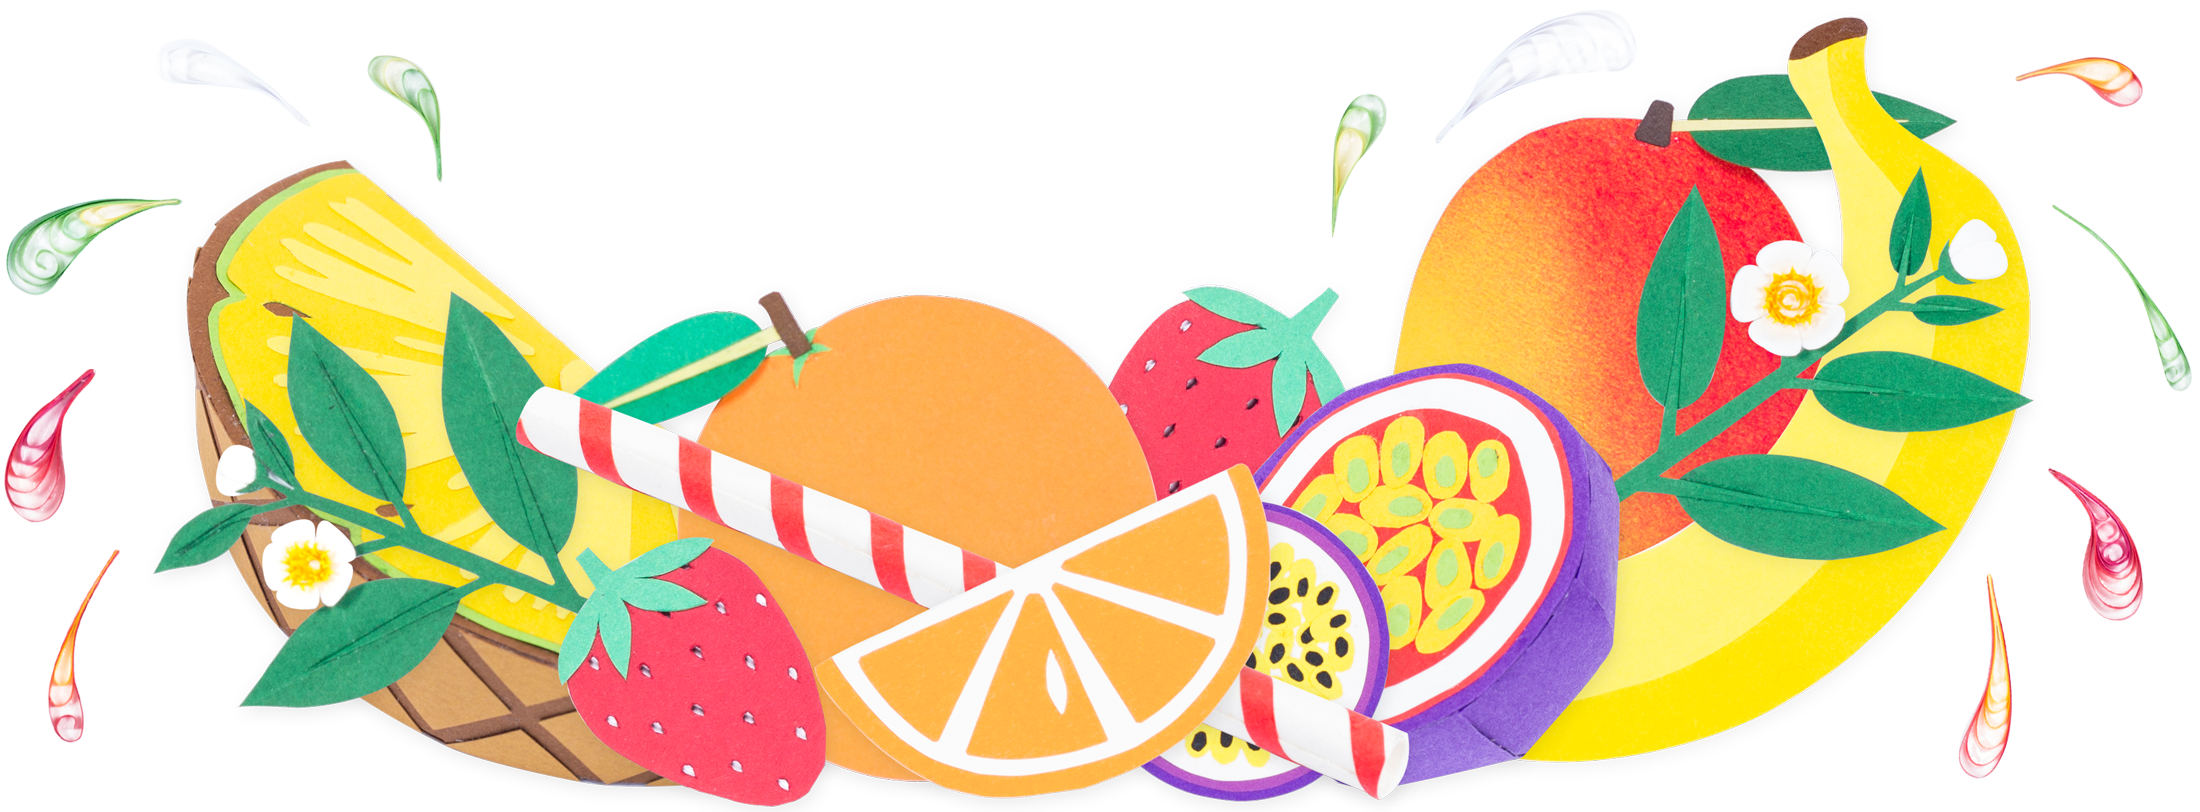 Home froo t natural. Nutrition clipart orange banana